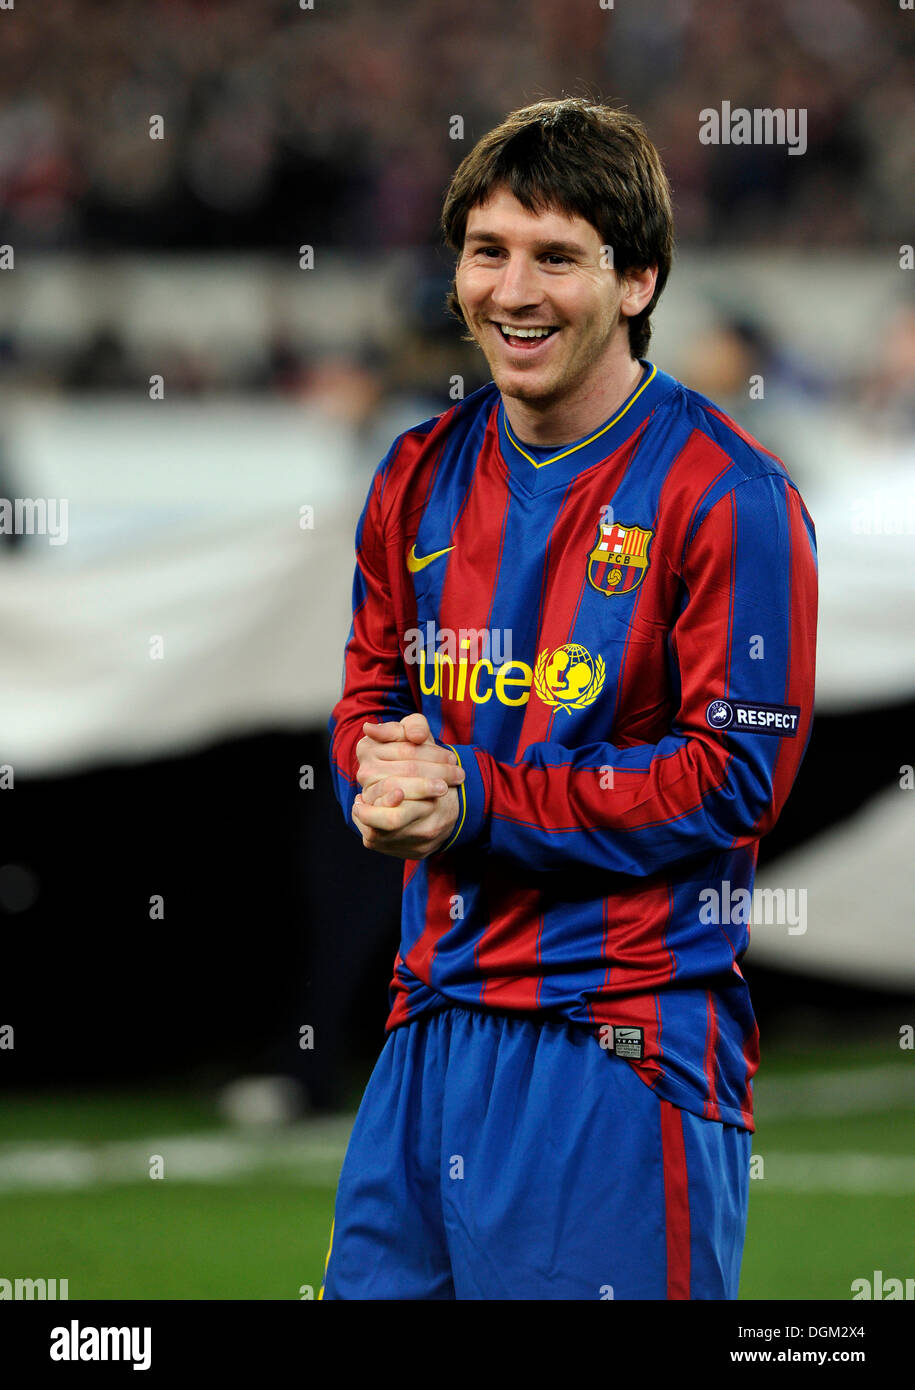 Lionel Messi, FC Barcelona, laughing - Stock Image